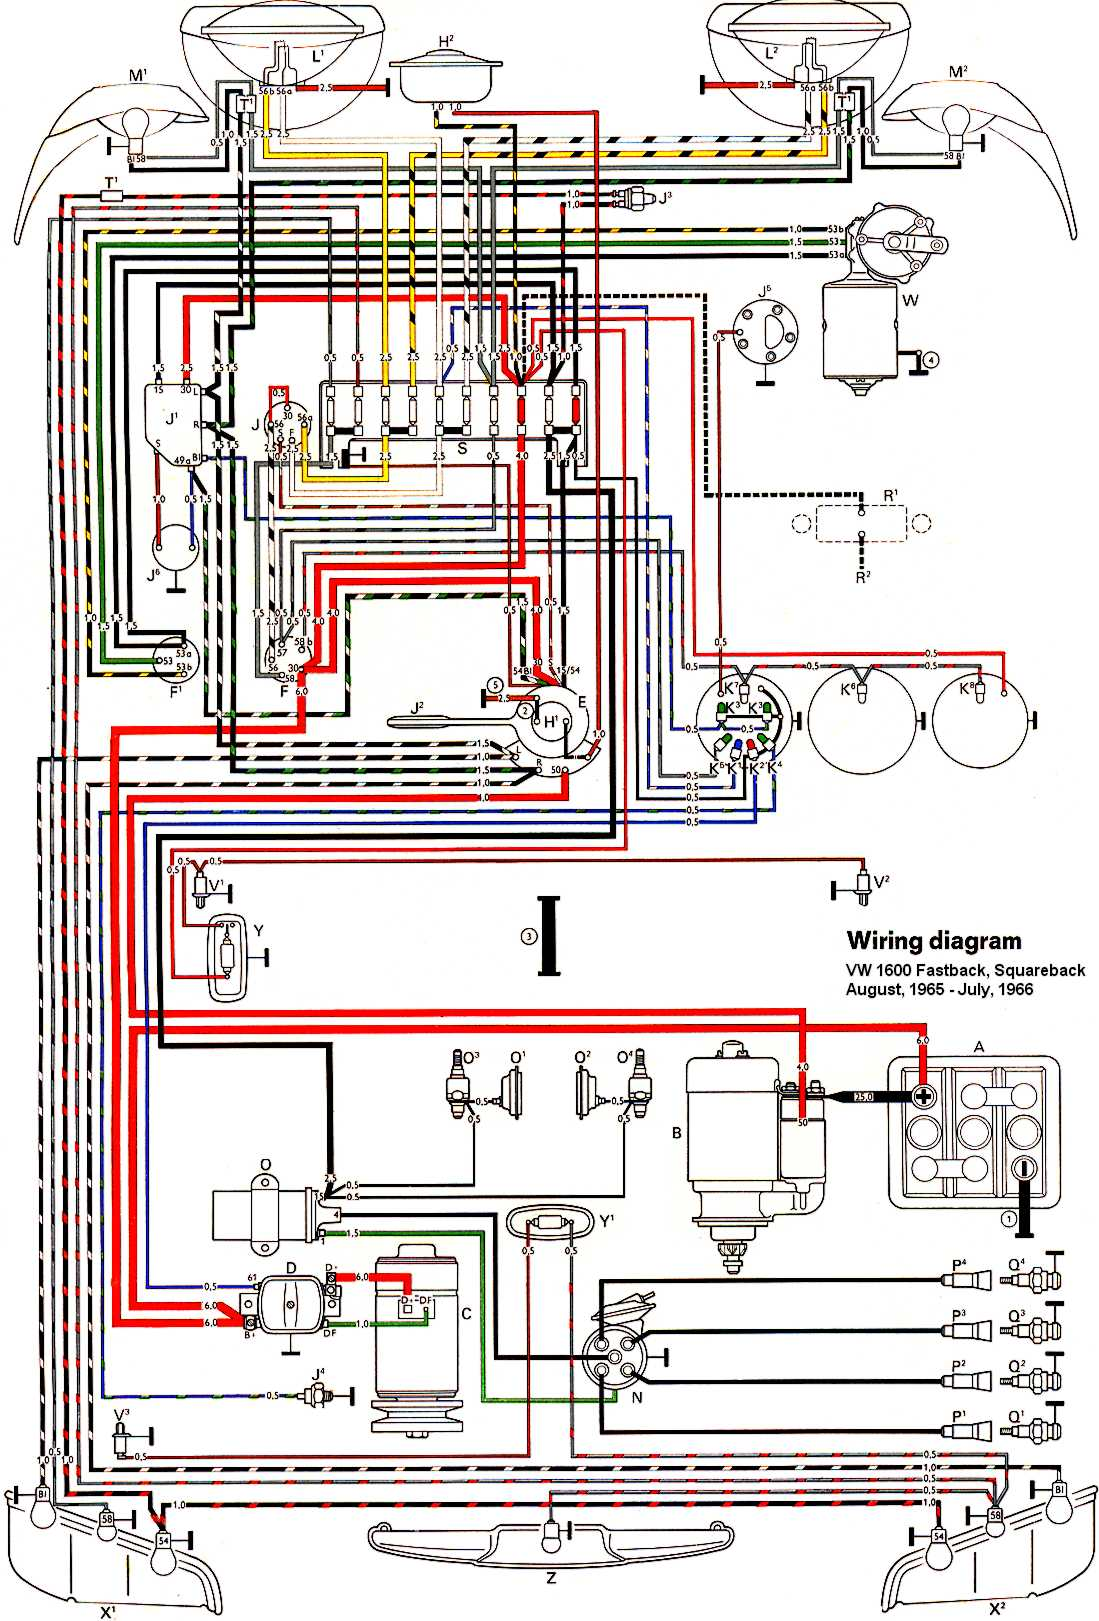 vw thing wiring wiring diagrams schematics 1974 VW Thing Wiring-Diagram and vw thing wiring harness wiring diagram manual vw thing wiring diagram vw thing wiring harness vw at Volkswagen Thing Wiring Harness